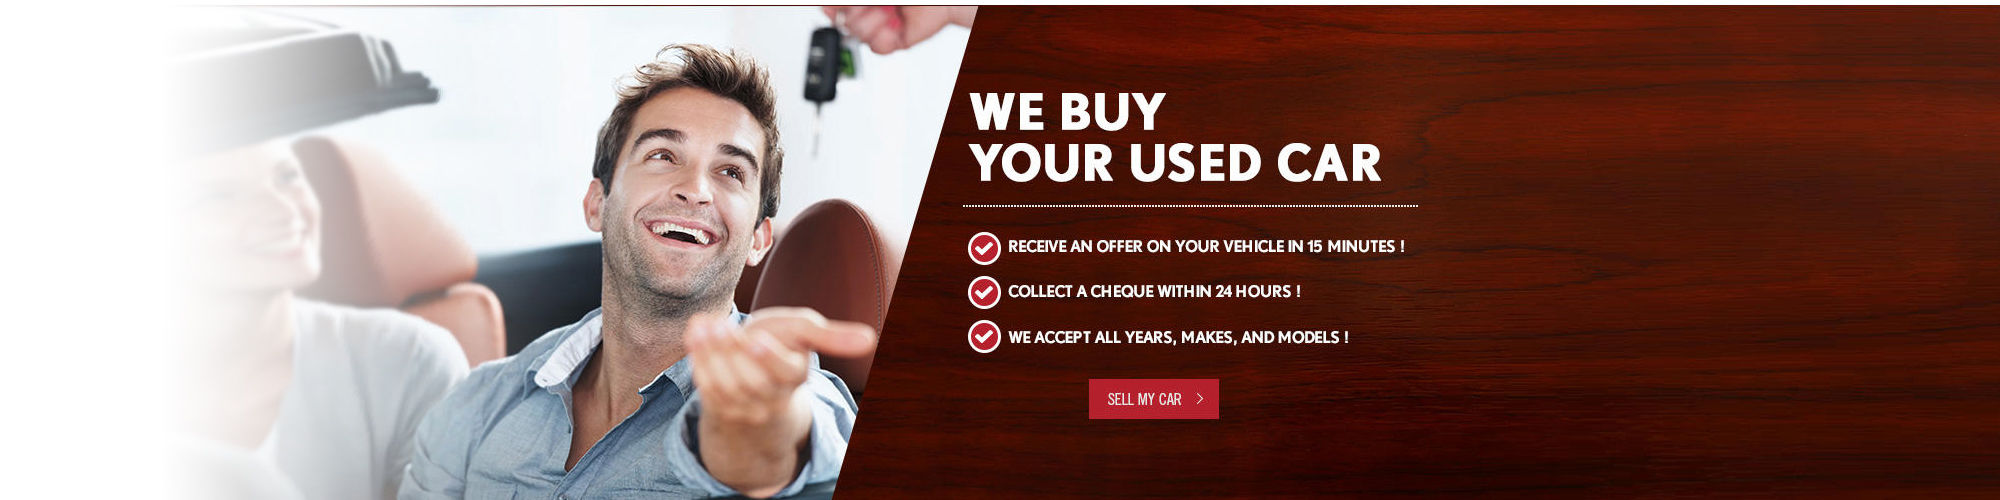 We buy your used car